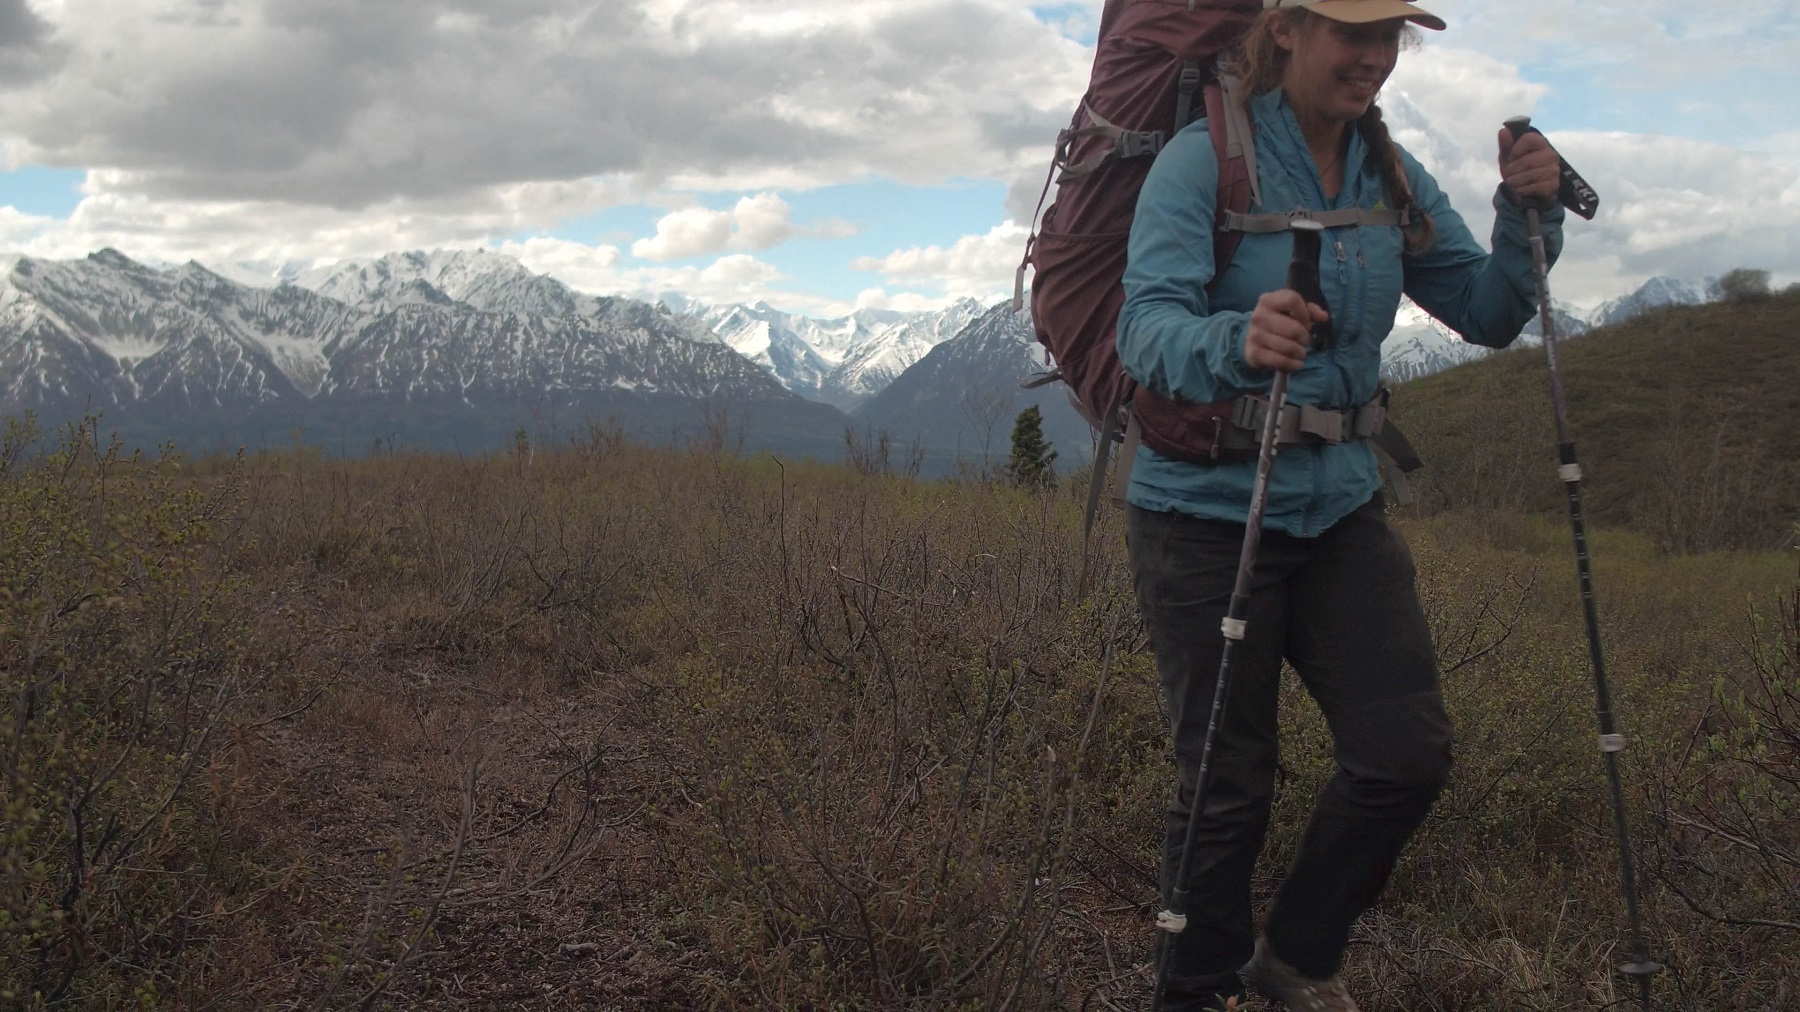 Training for Backpacking